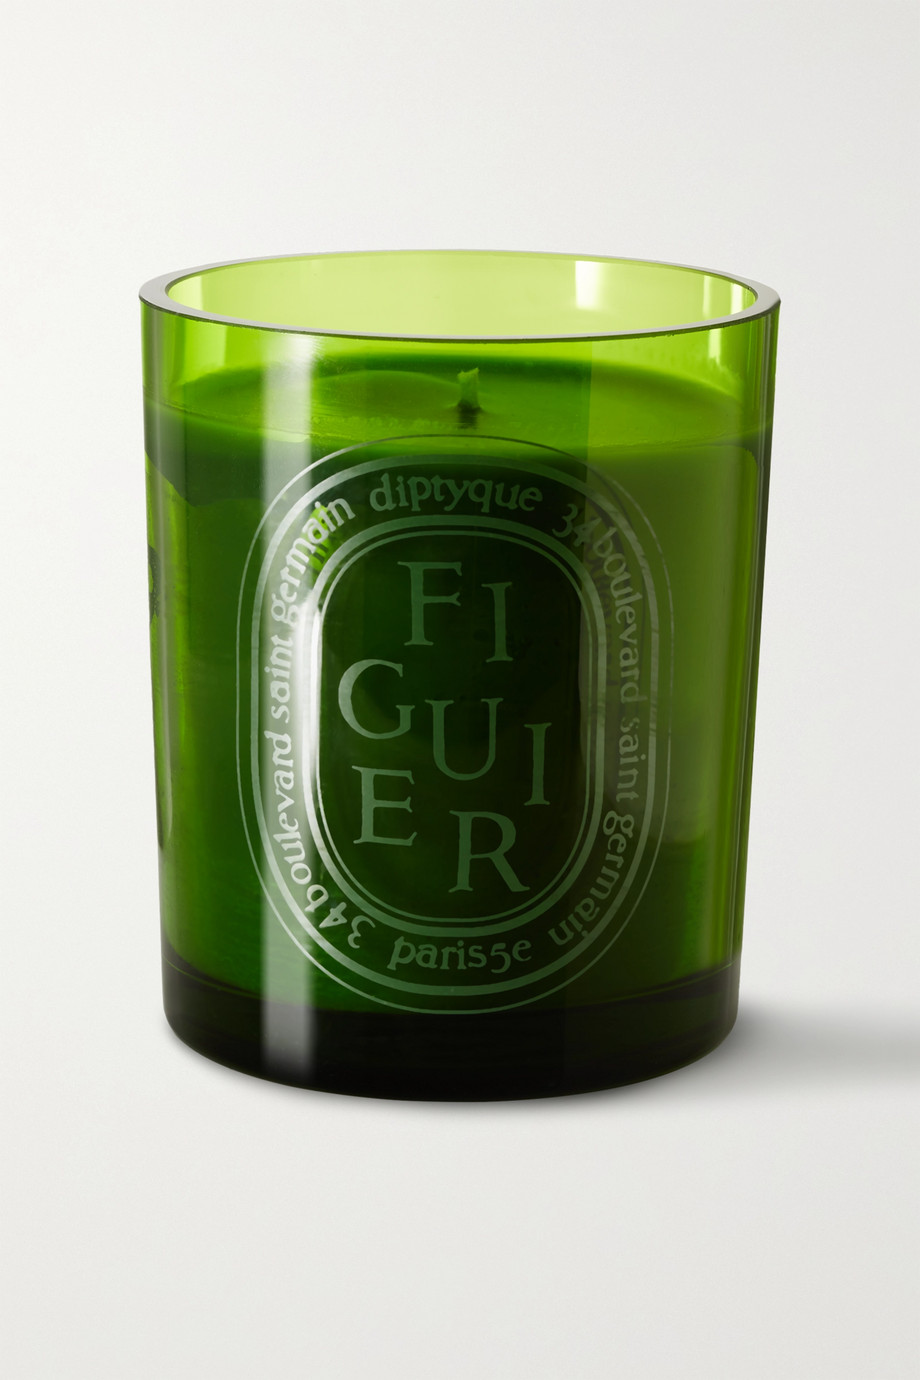 Diptyque Green Figuier scented candle, 300g